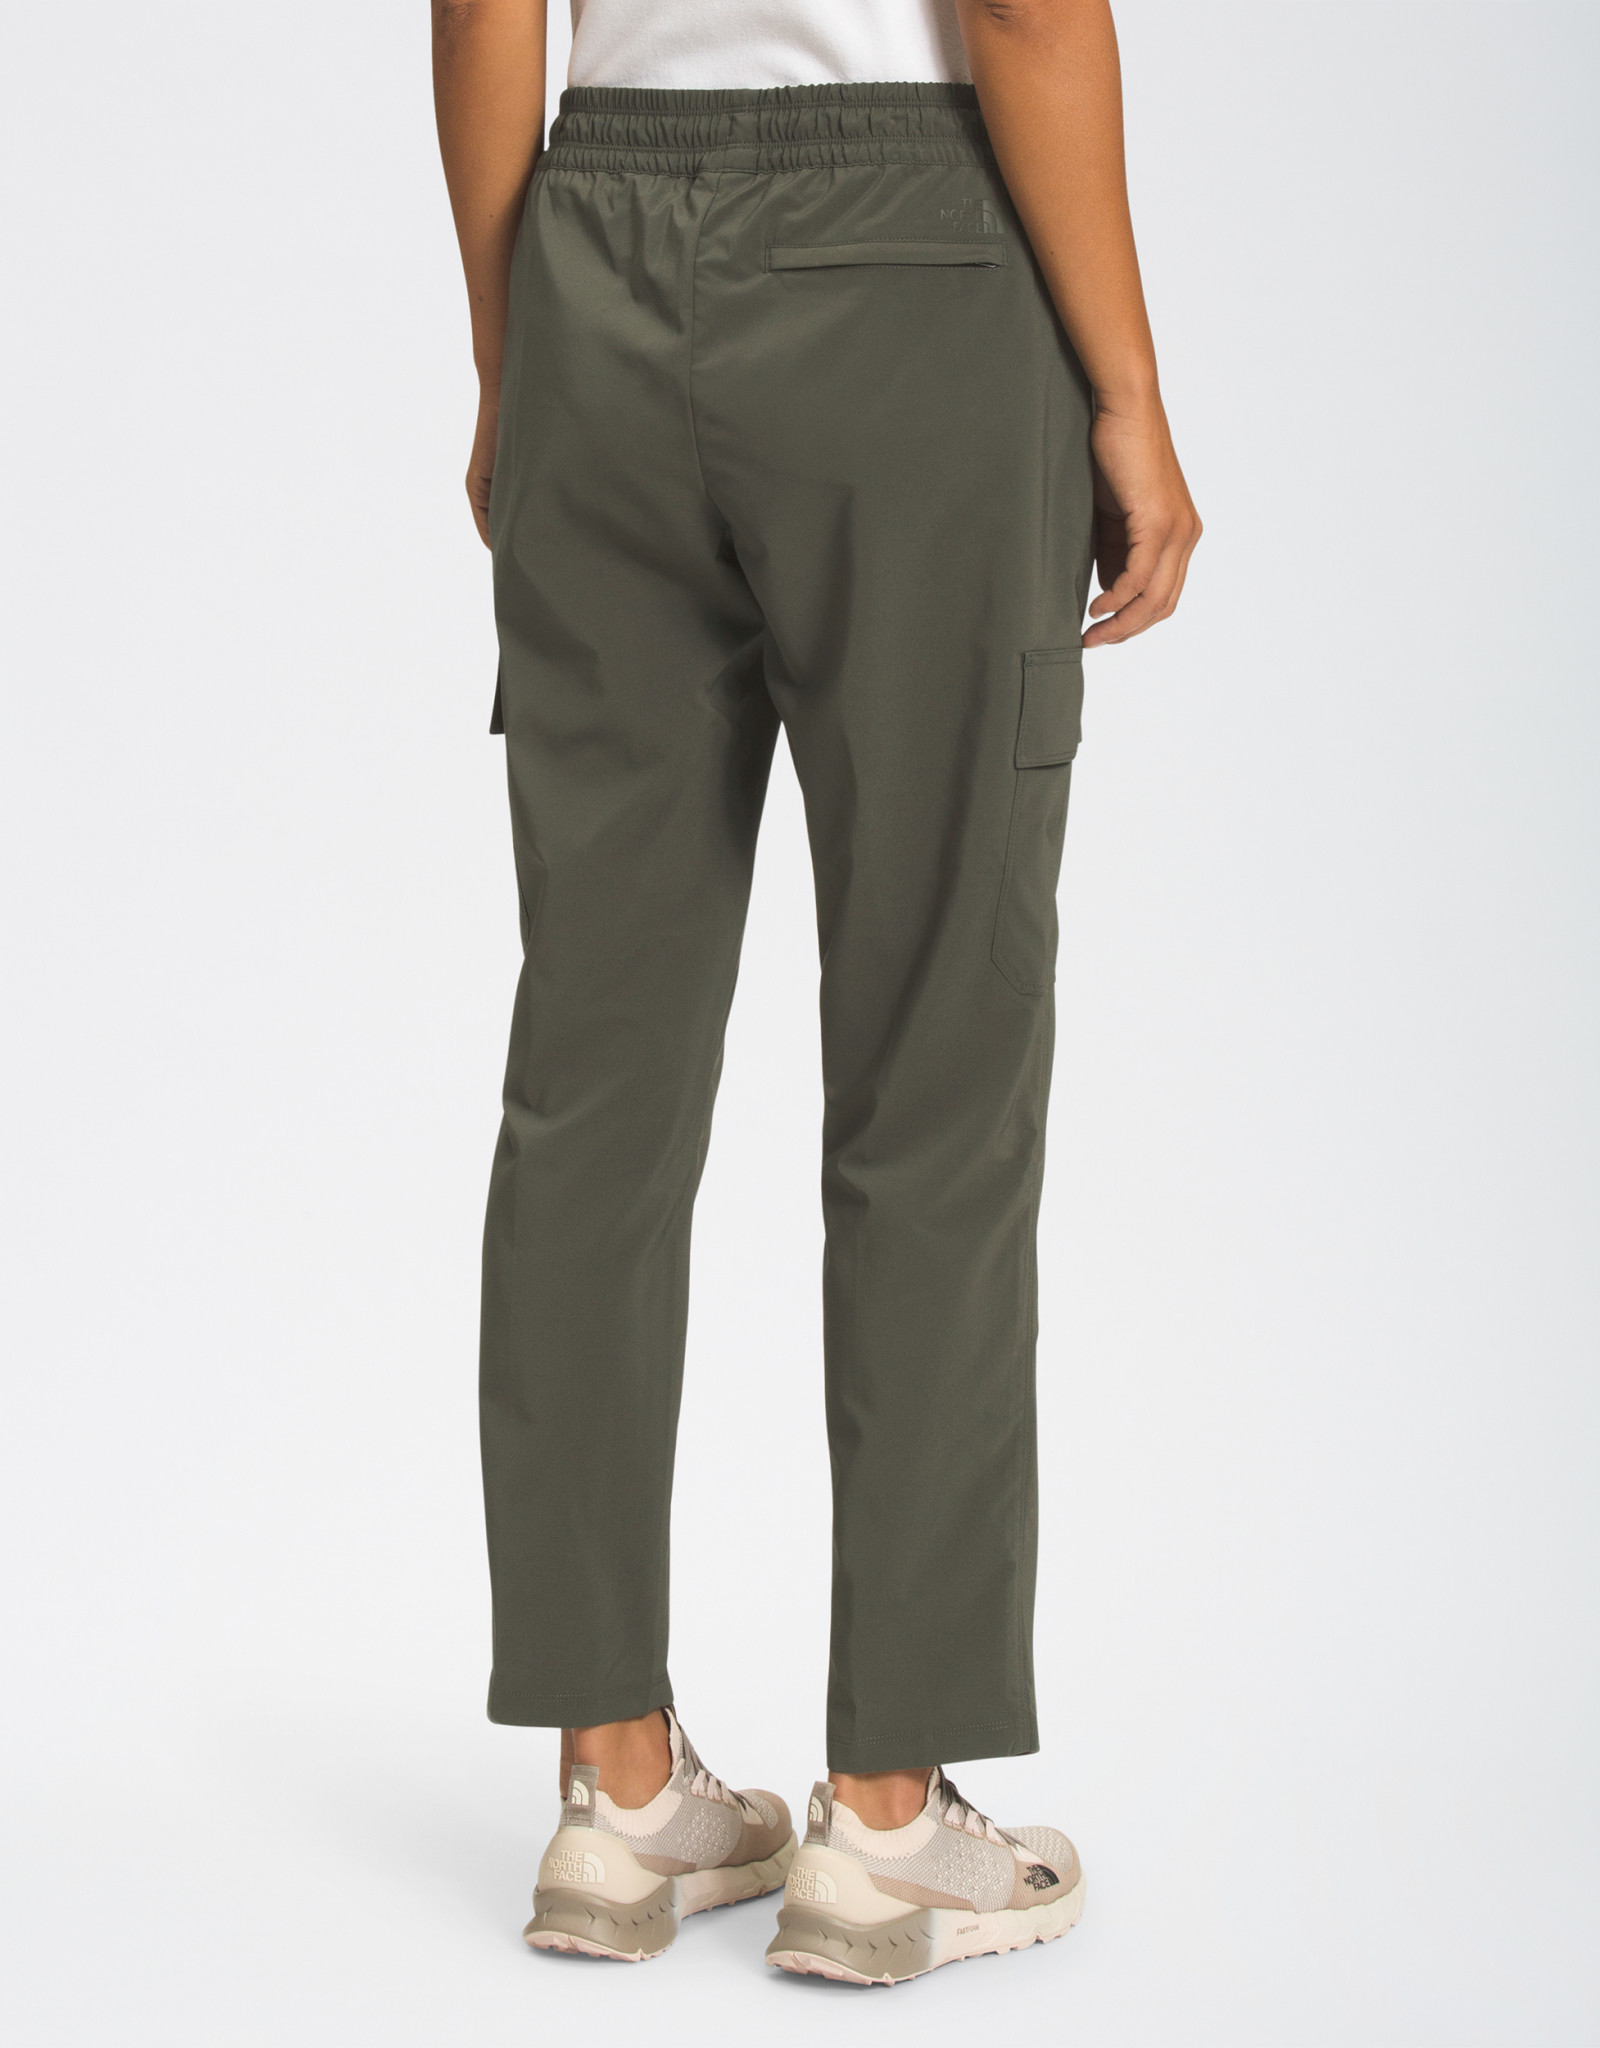 The North Face The North Face Women's Never Stop Wearing Cargo Pant -S2021